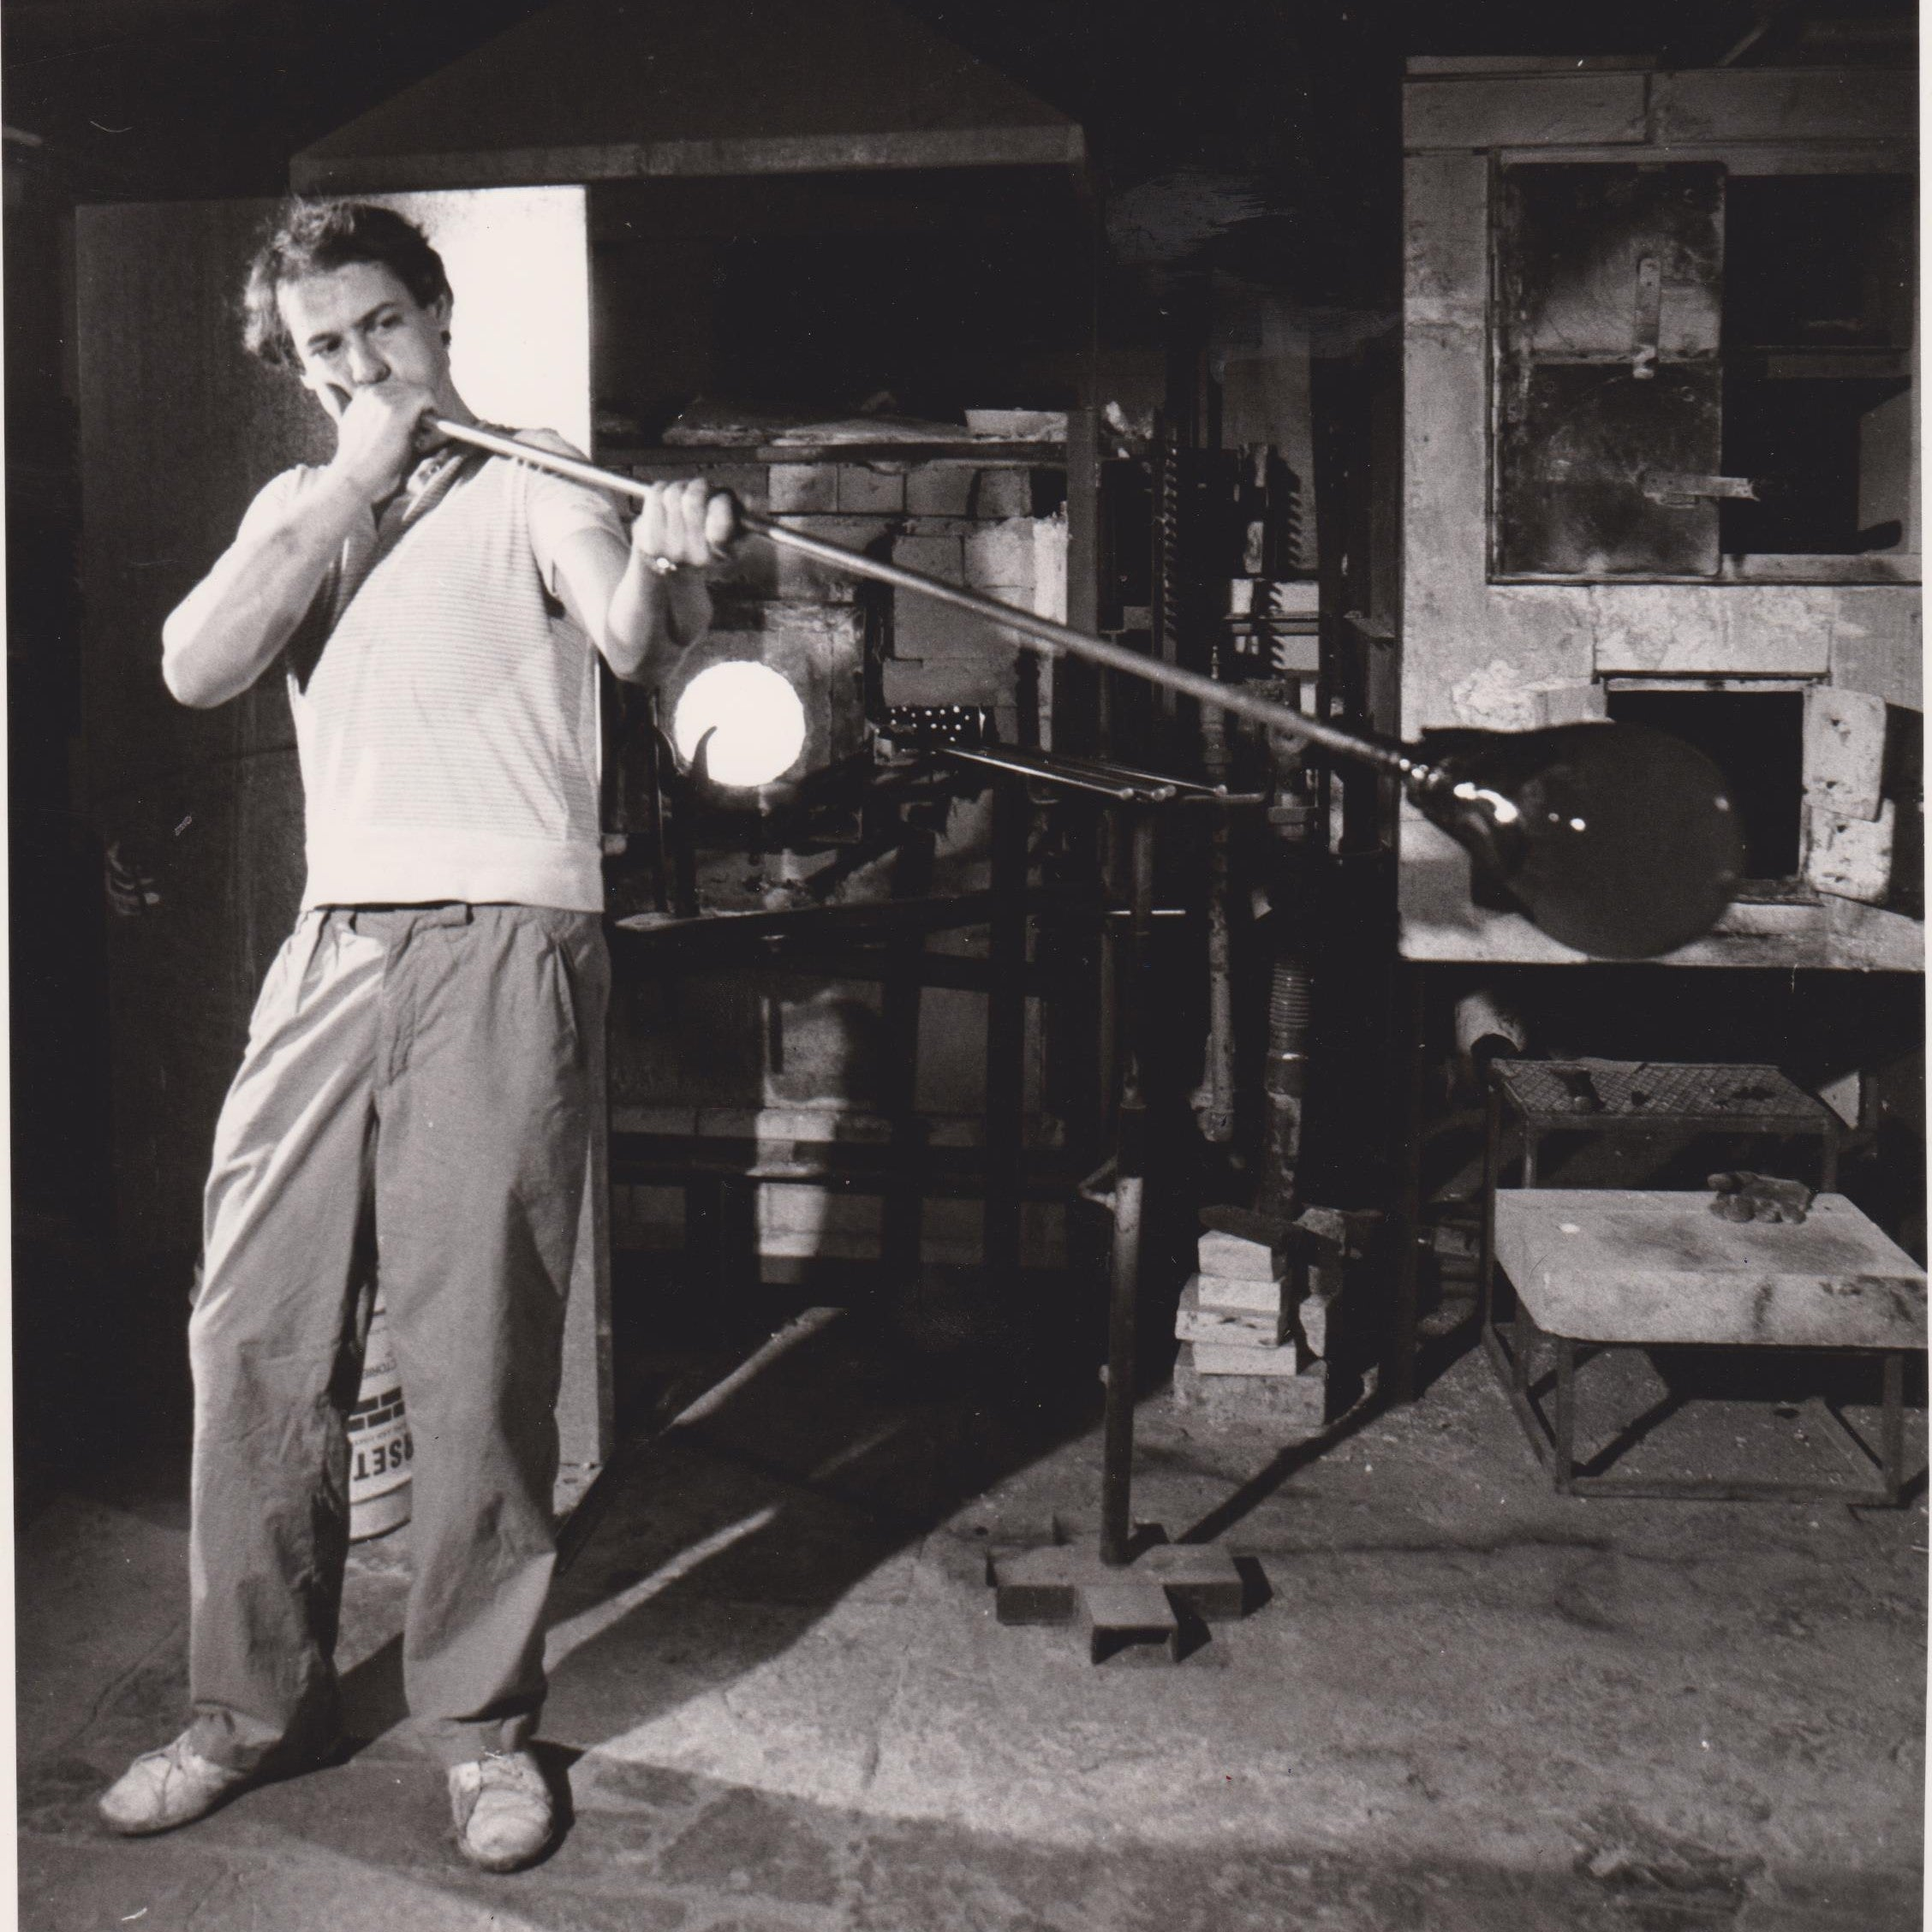 John blowing in the original Glasform studio in teh early 1980's.